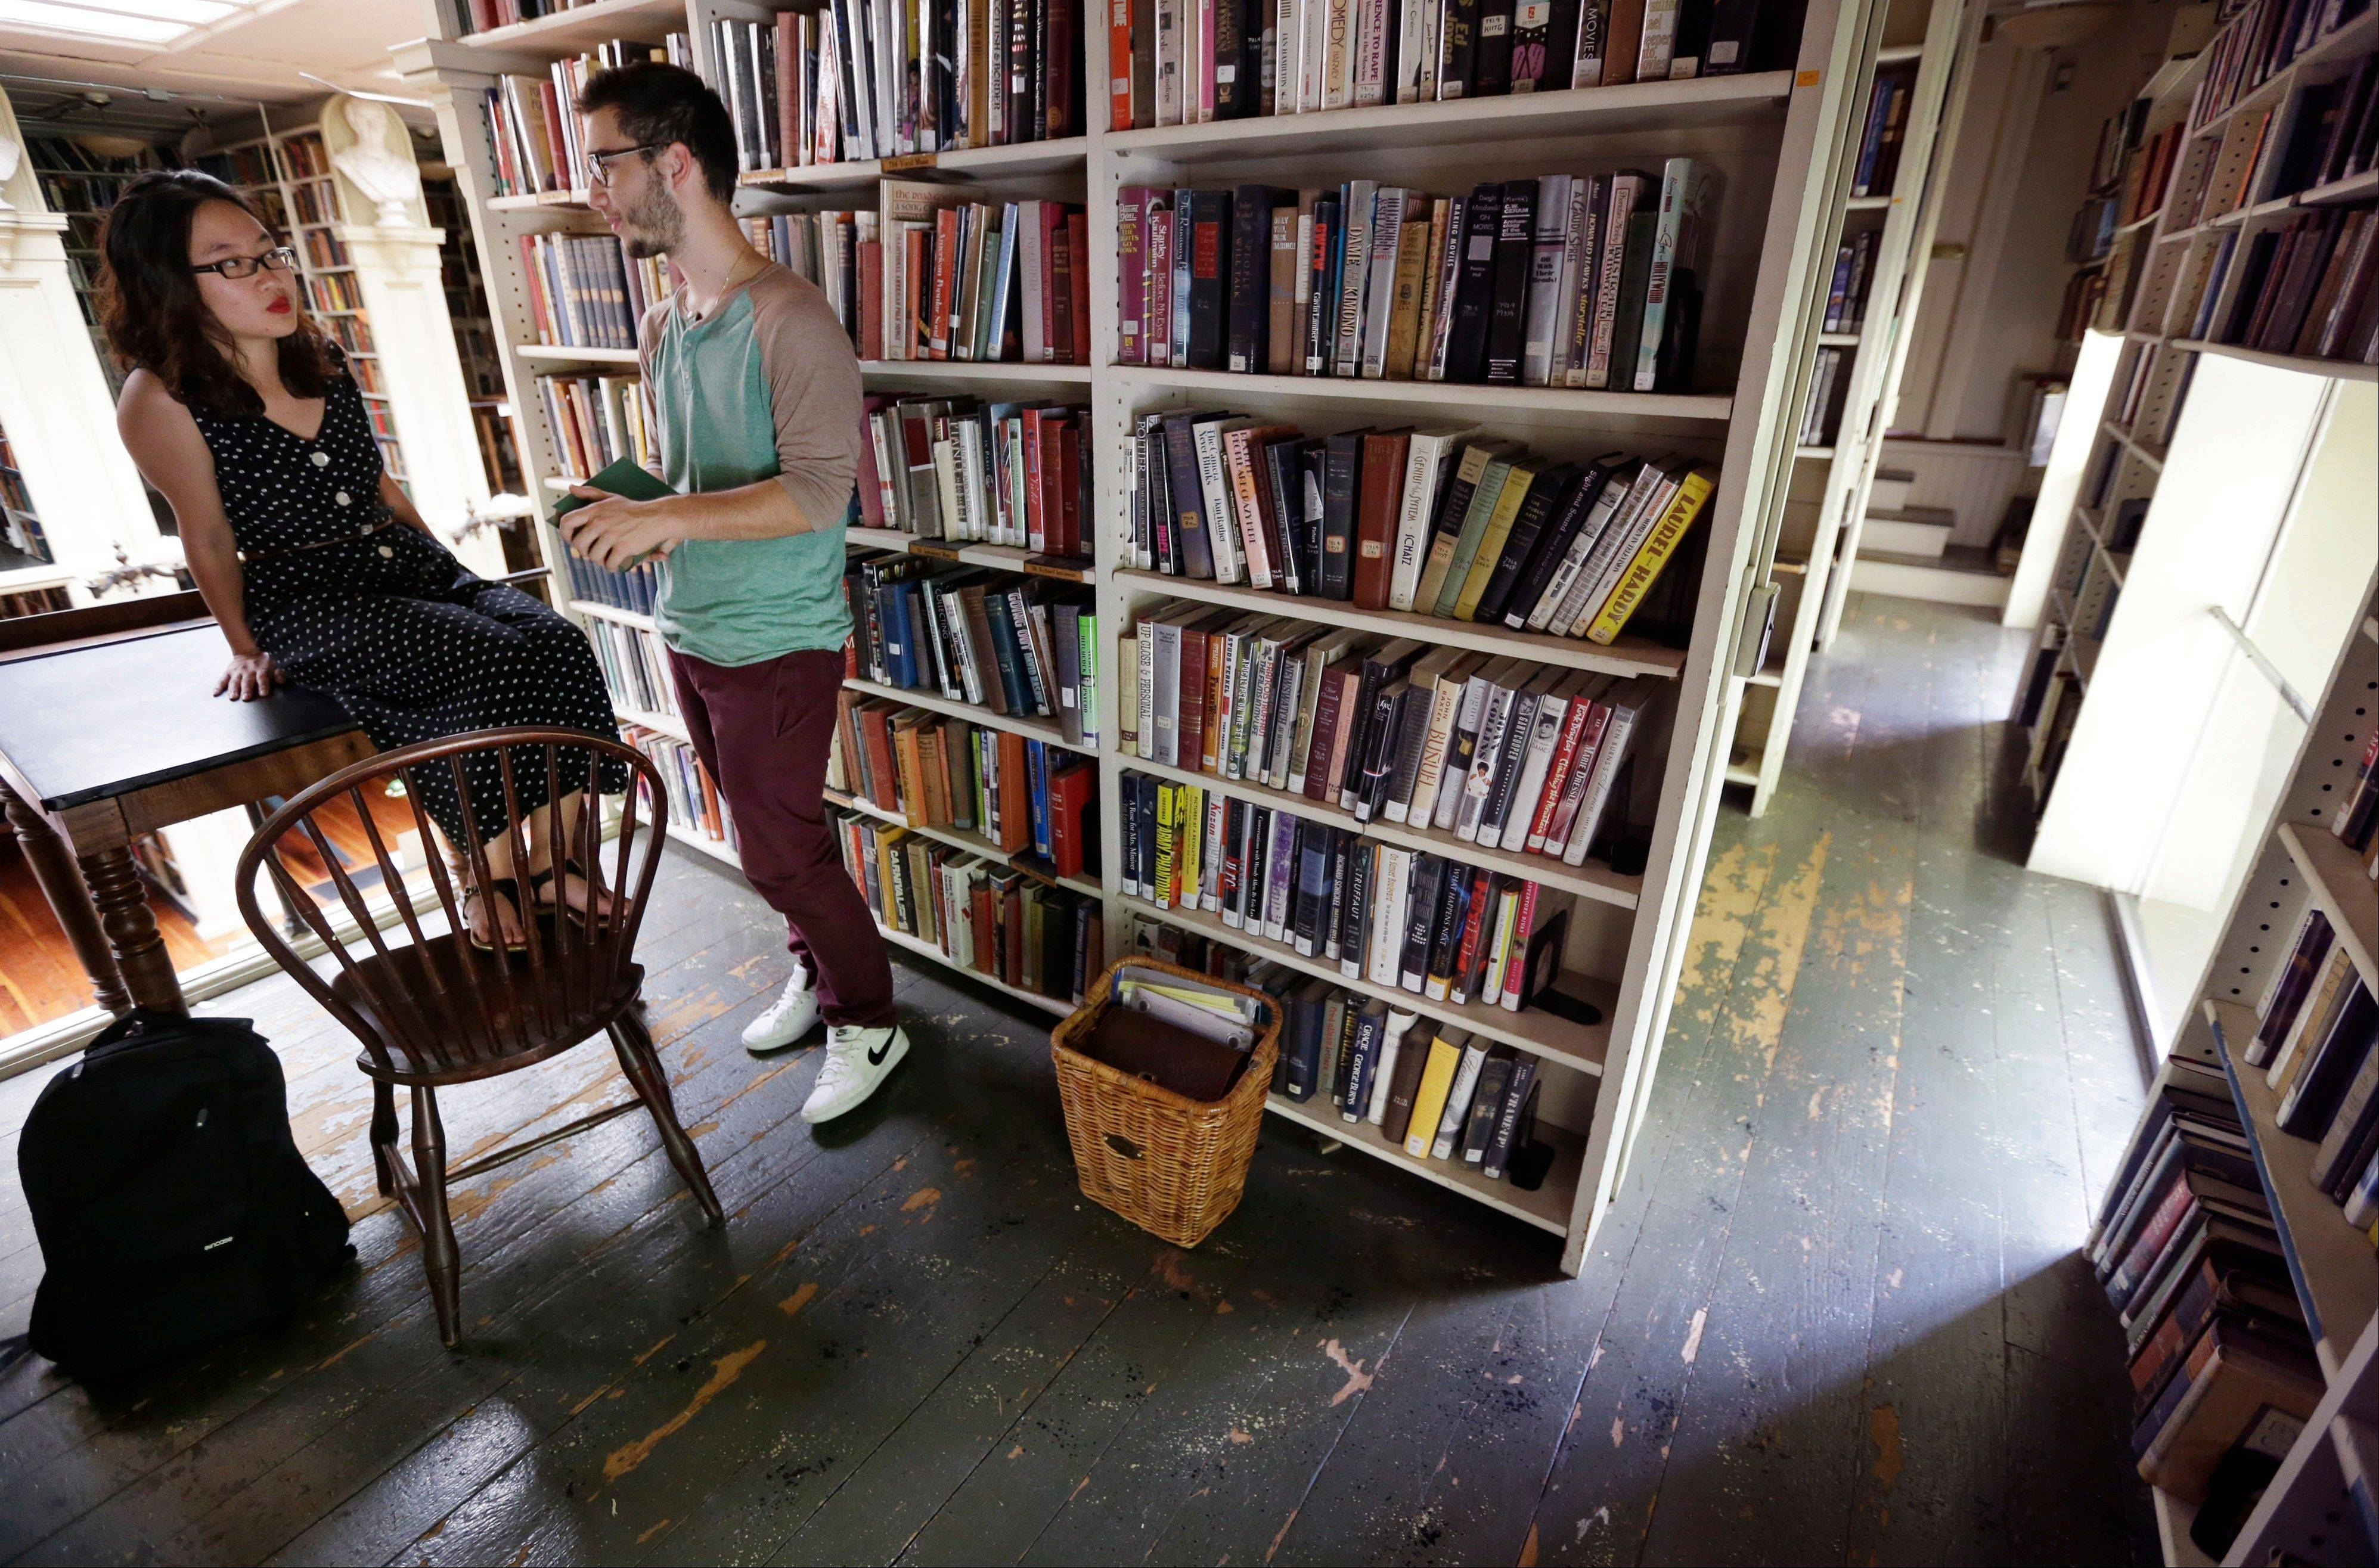 Brown University students Nicha Ratana-Apiromyakij, left, and Nick Melachrinos, stop to talk while visiting the stacks at the Providence Athenaeum, in Providence, R.I.